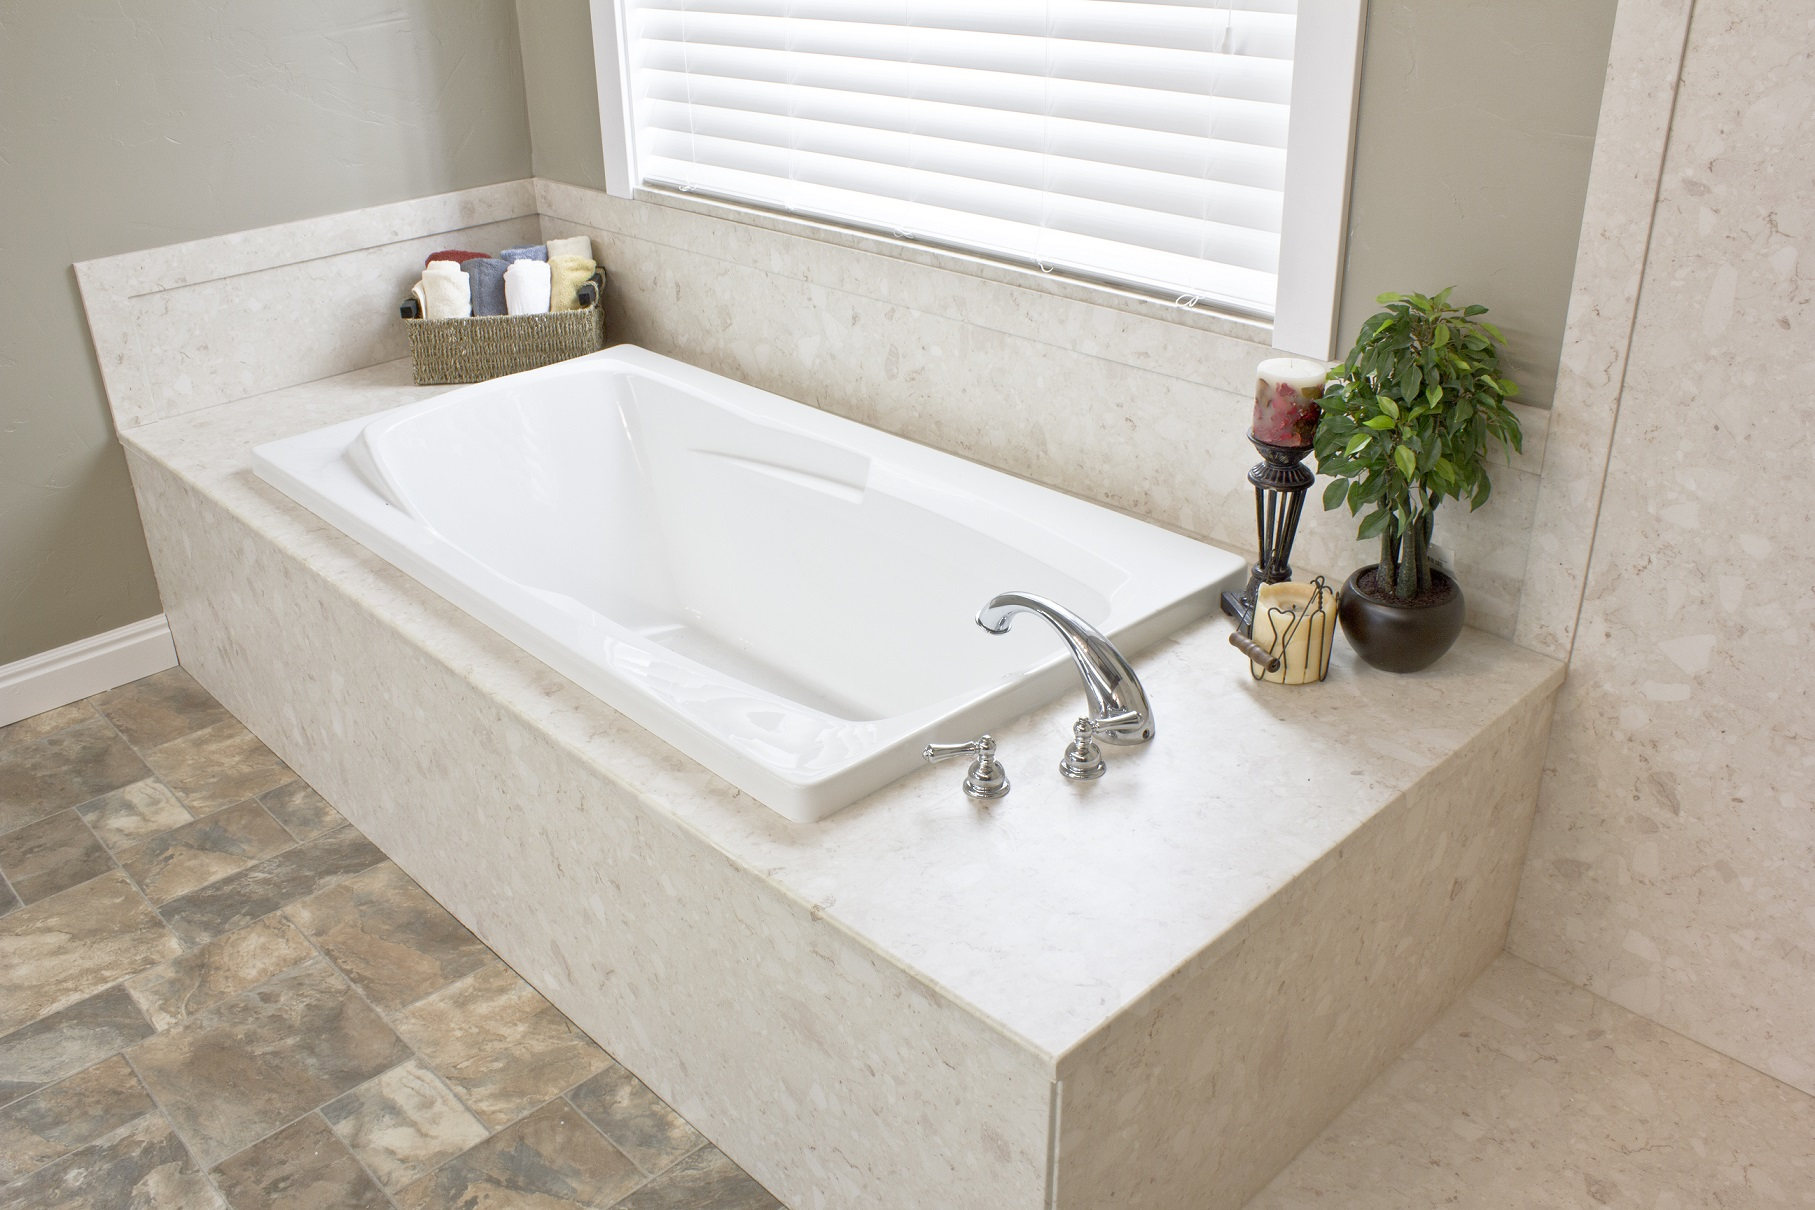 Bathroom Fixtures Etobicoke toronto bath renovation & remodeling - bath solutions of toronto west